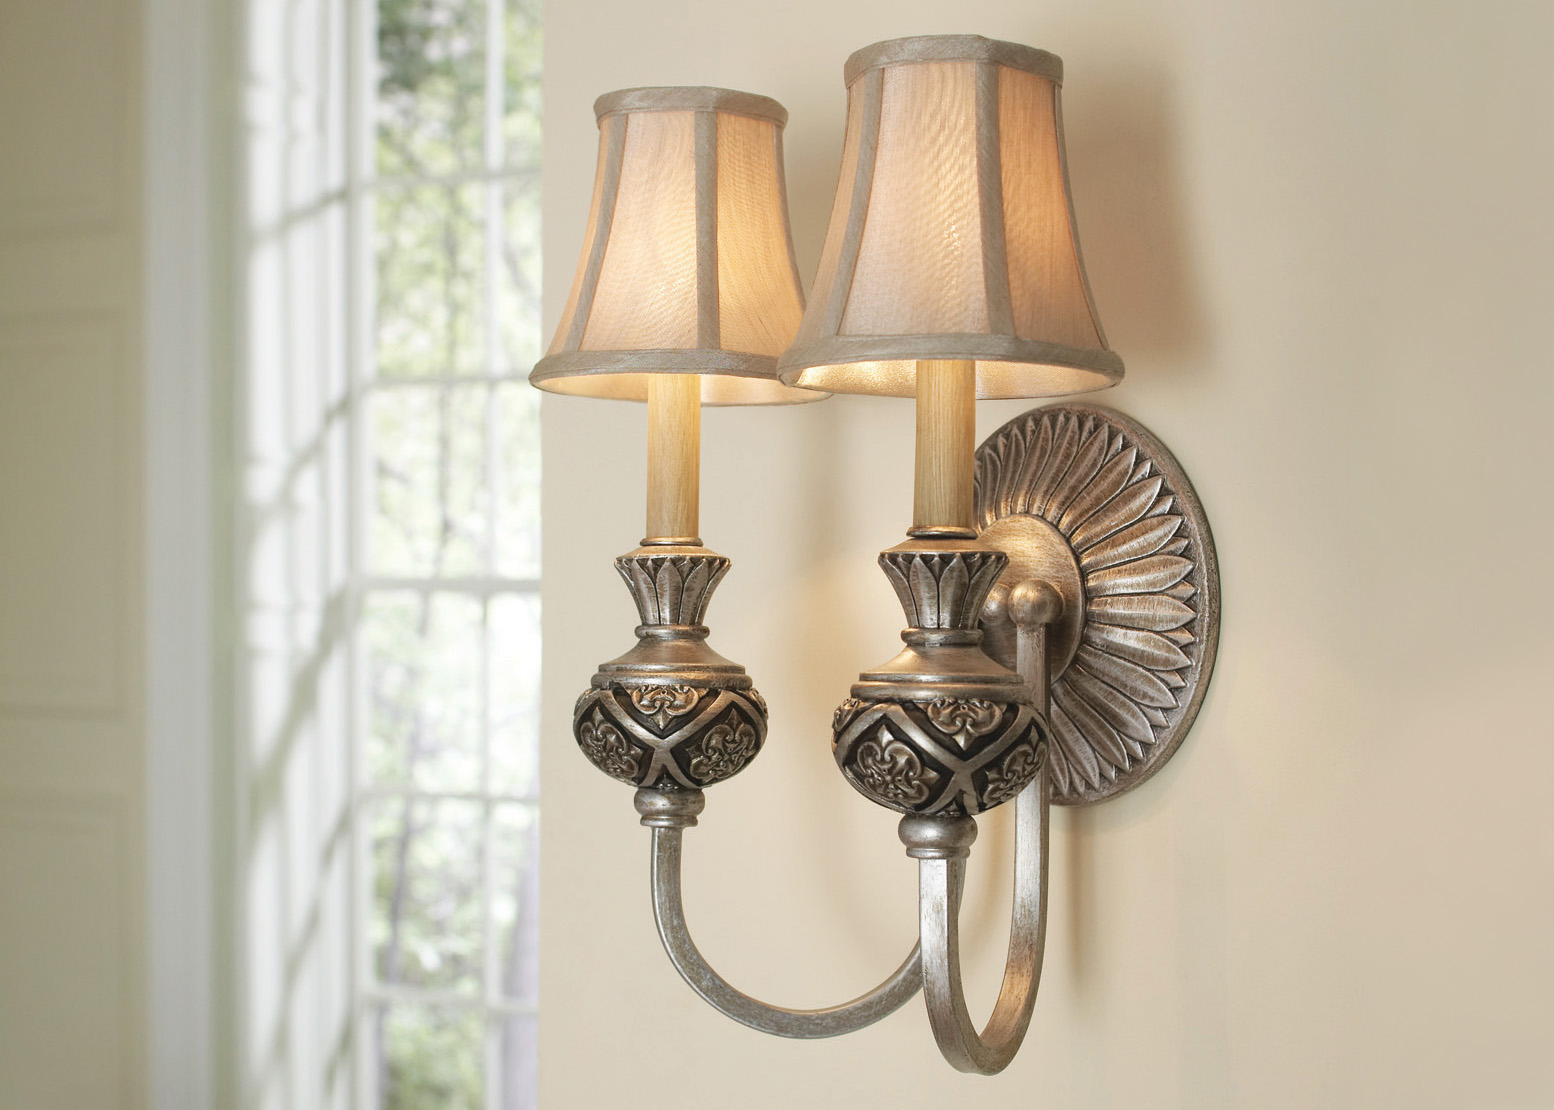 What Is A Clip On Lamp Shade?